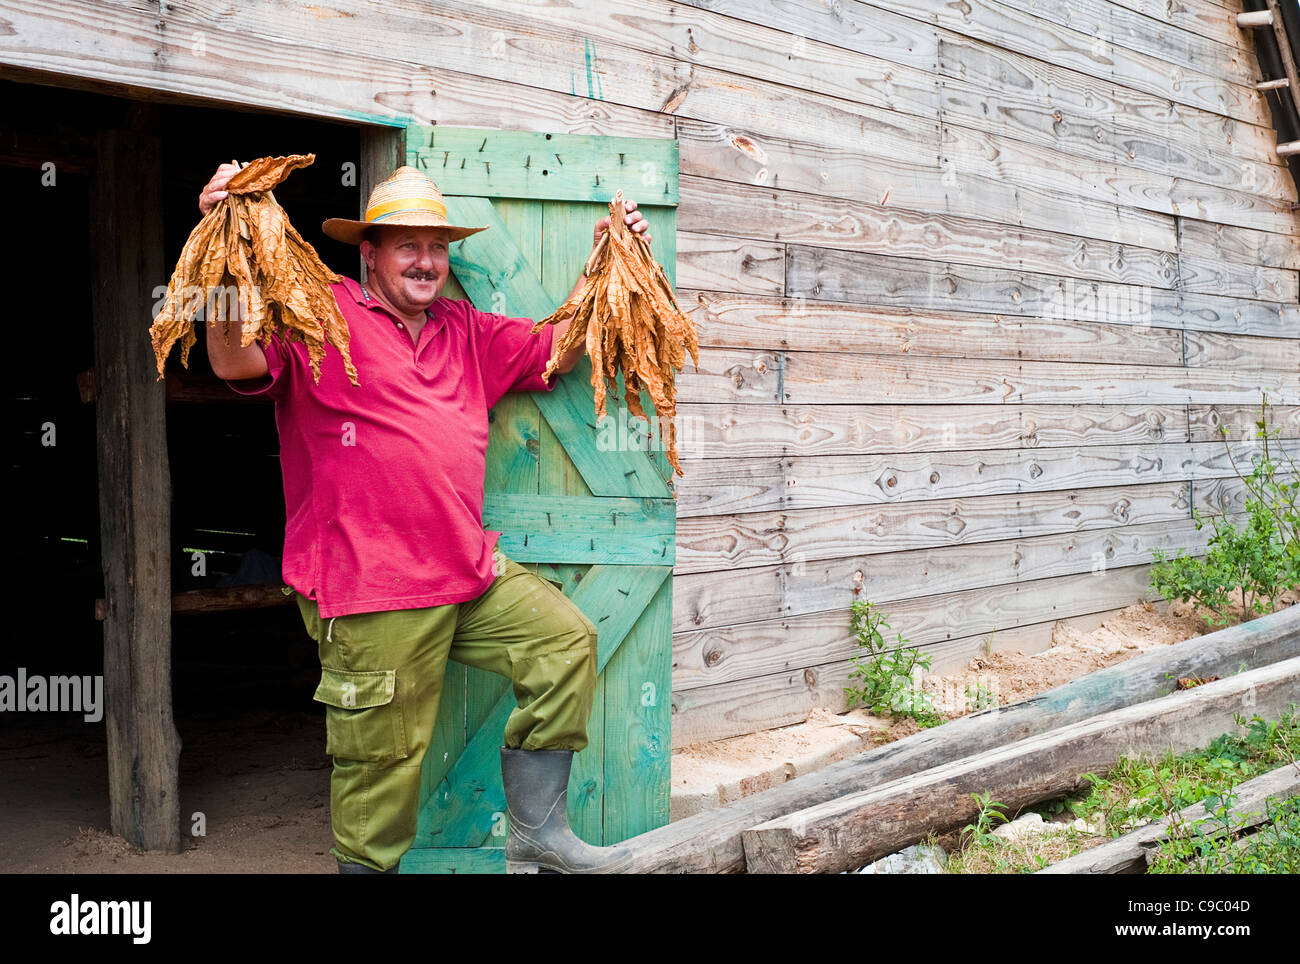 Cuba, Caribbean, Central, Tobacco Farmer holding dried leaves at door to drying shed on farm. - Stock Image